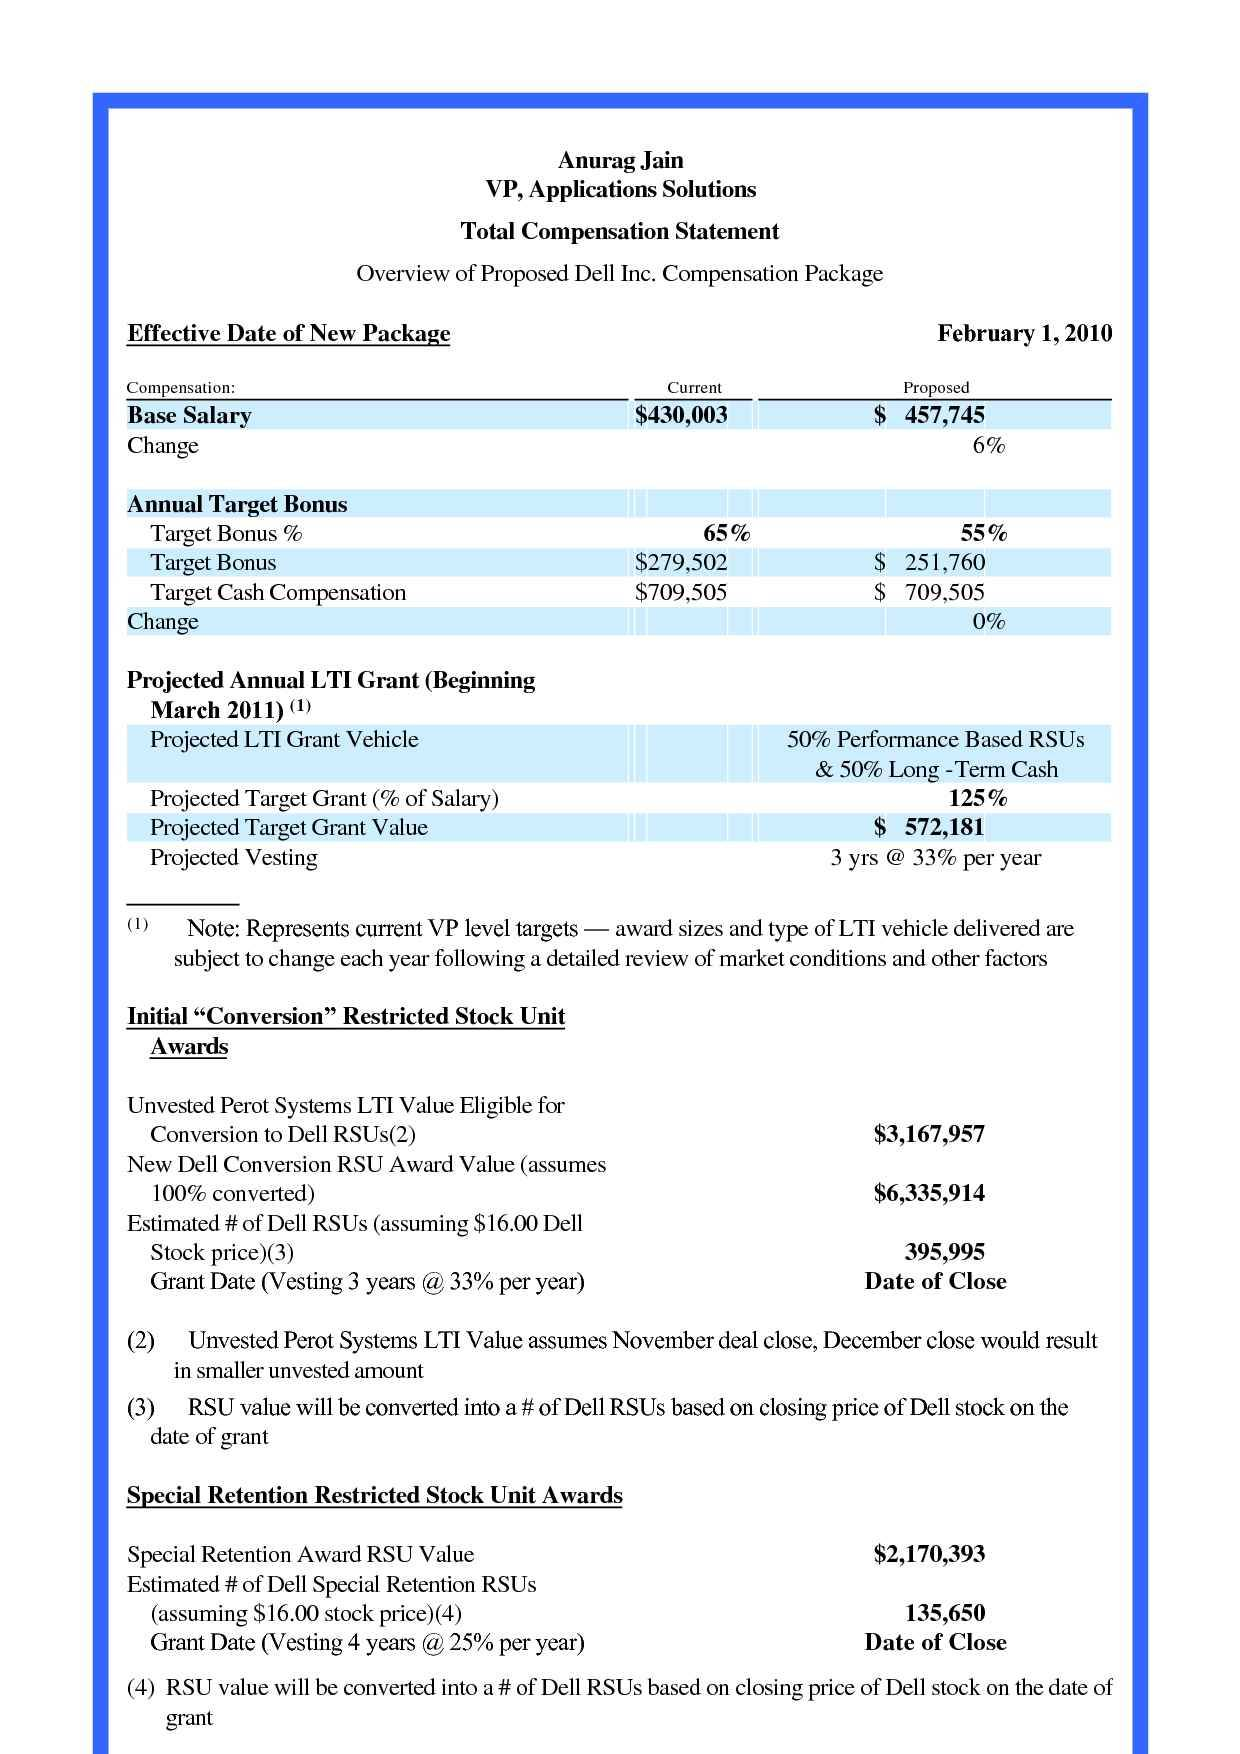 Total Compensation Statement Word Template